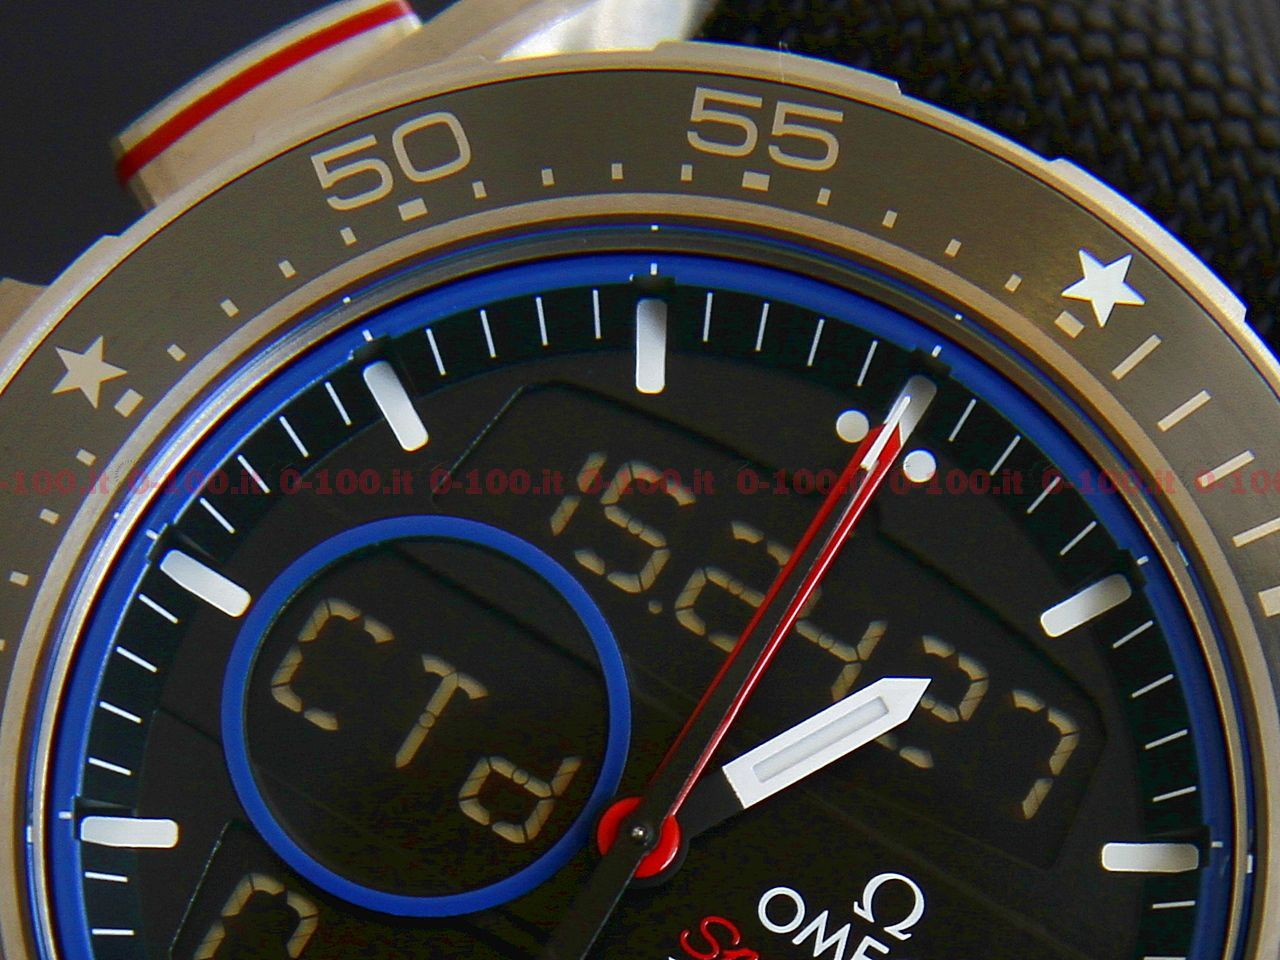 omega-speedmaster-x33-regatta-team-tilt-gc32_0-100-41